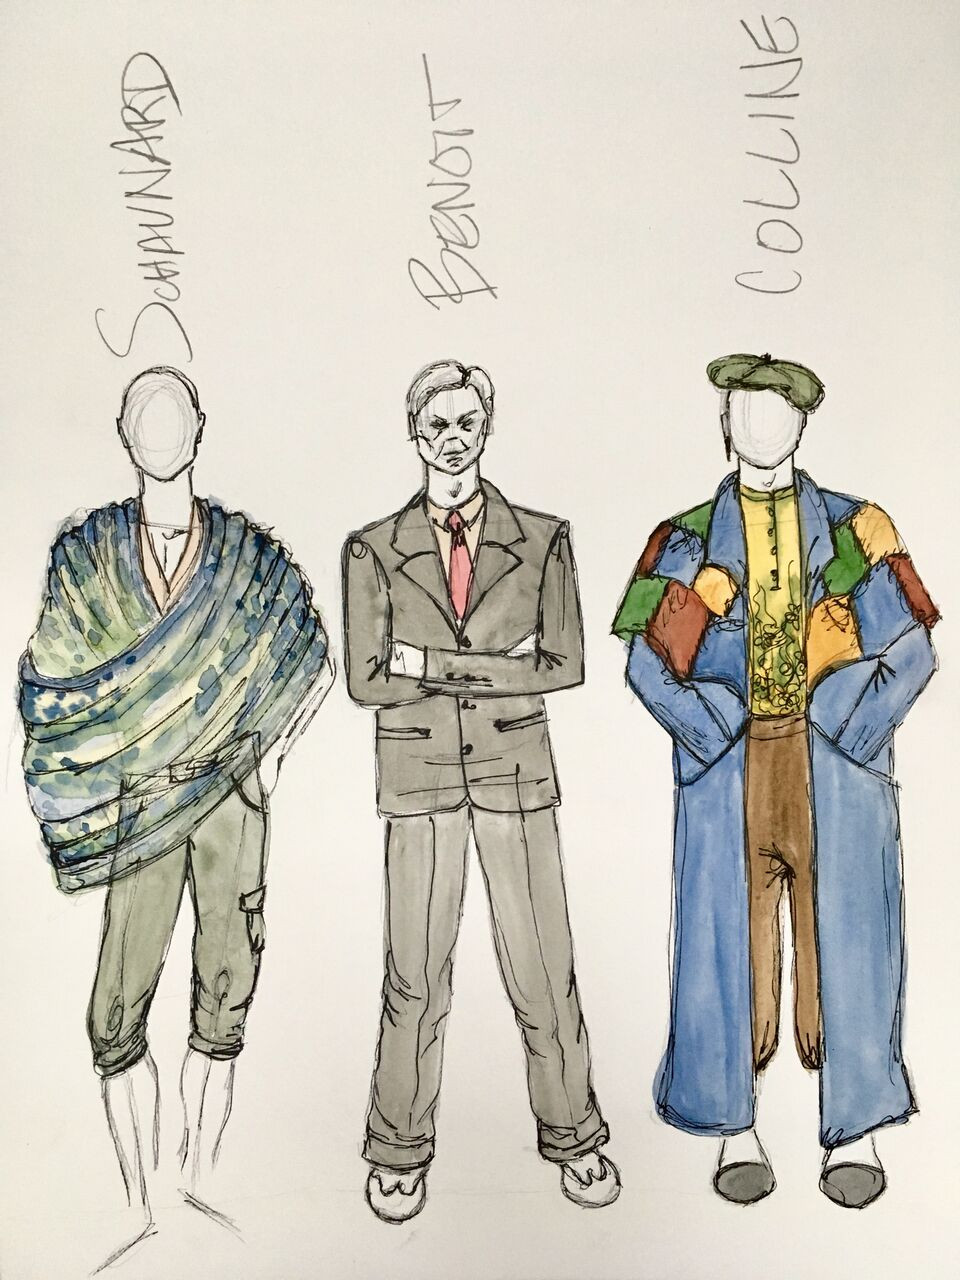 Costume sketches by Maddie Peterson for OR, 2018